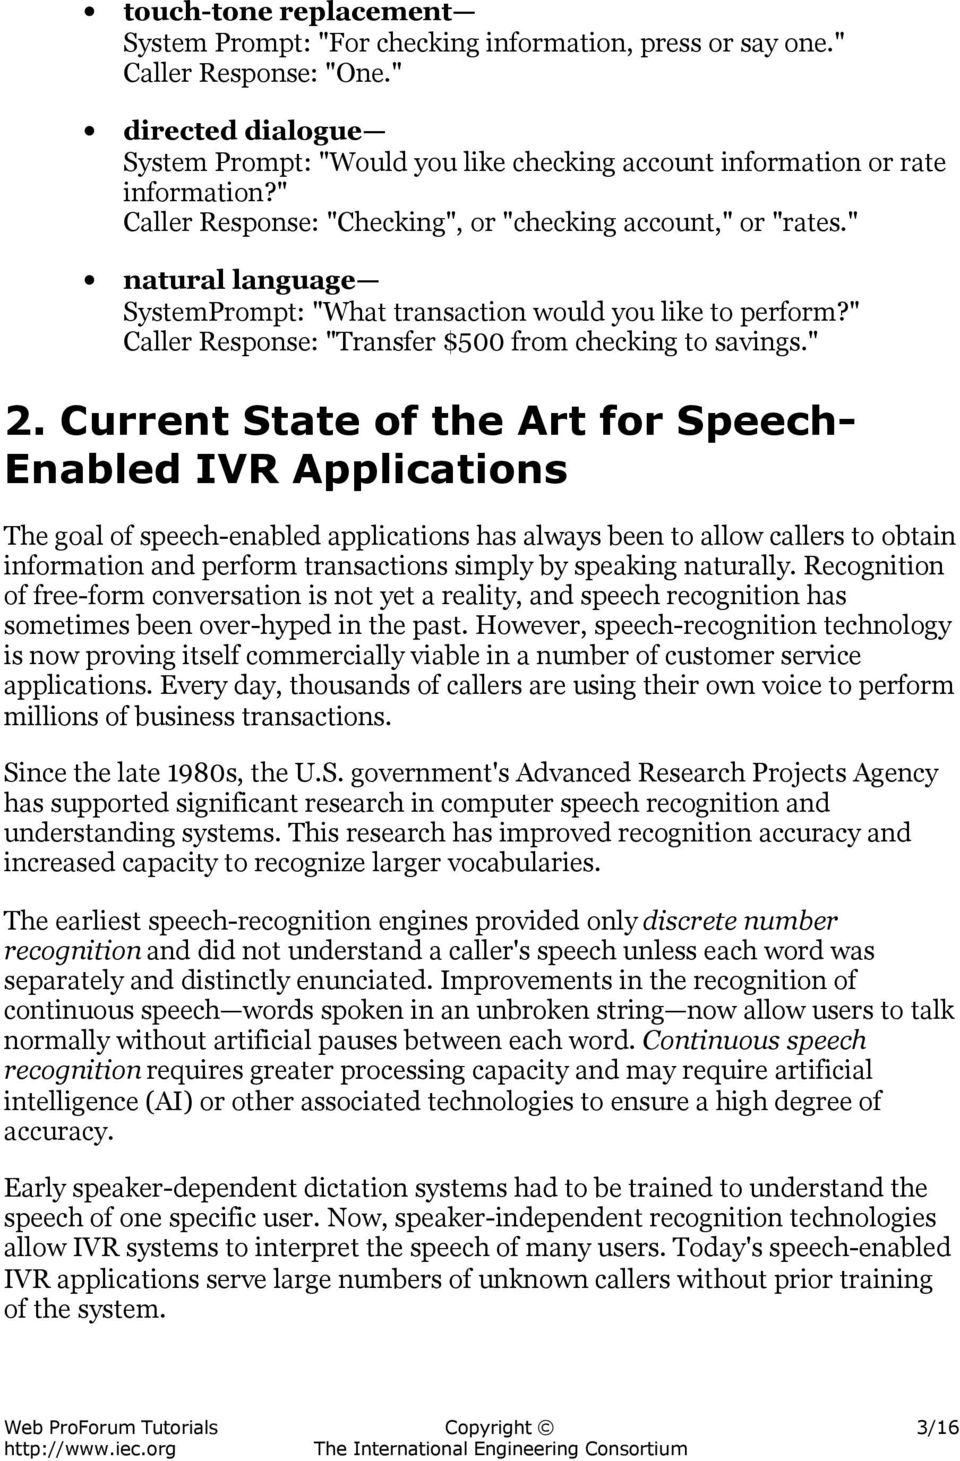 Speech-Enabled Interactive Voice Response Systems - PDF